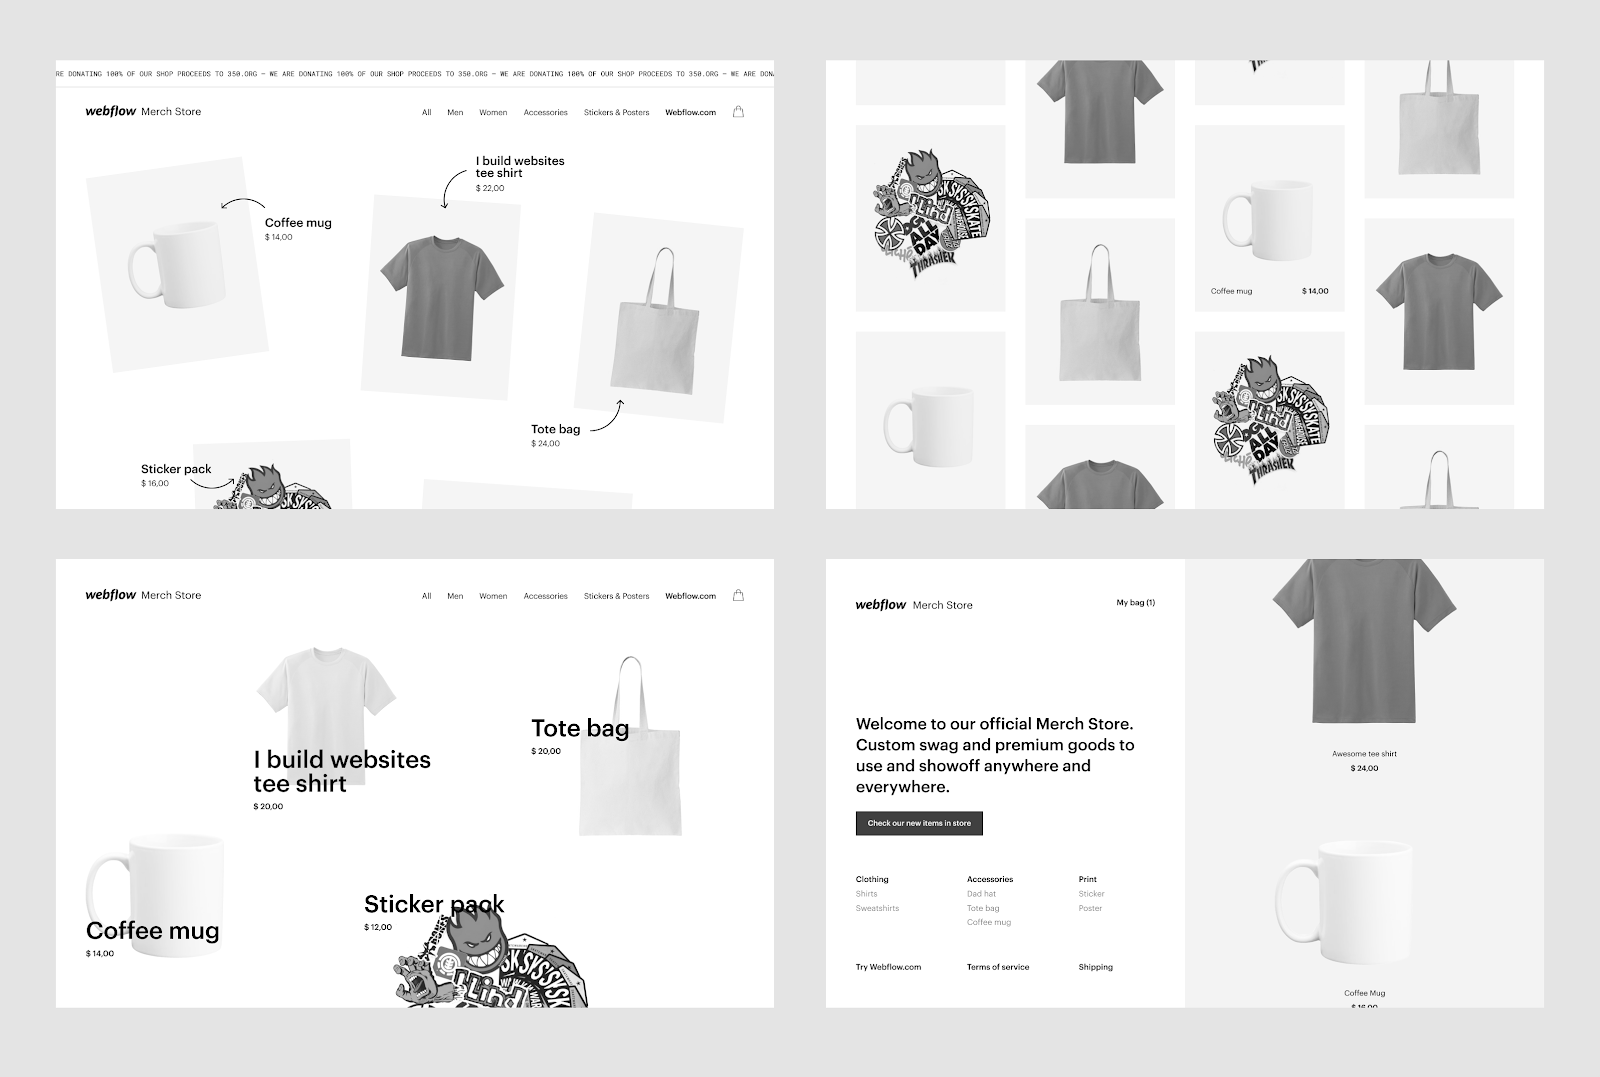 4 different explorations of the webflow merch store that sells shirts, hoodies, posters.